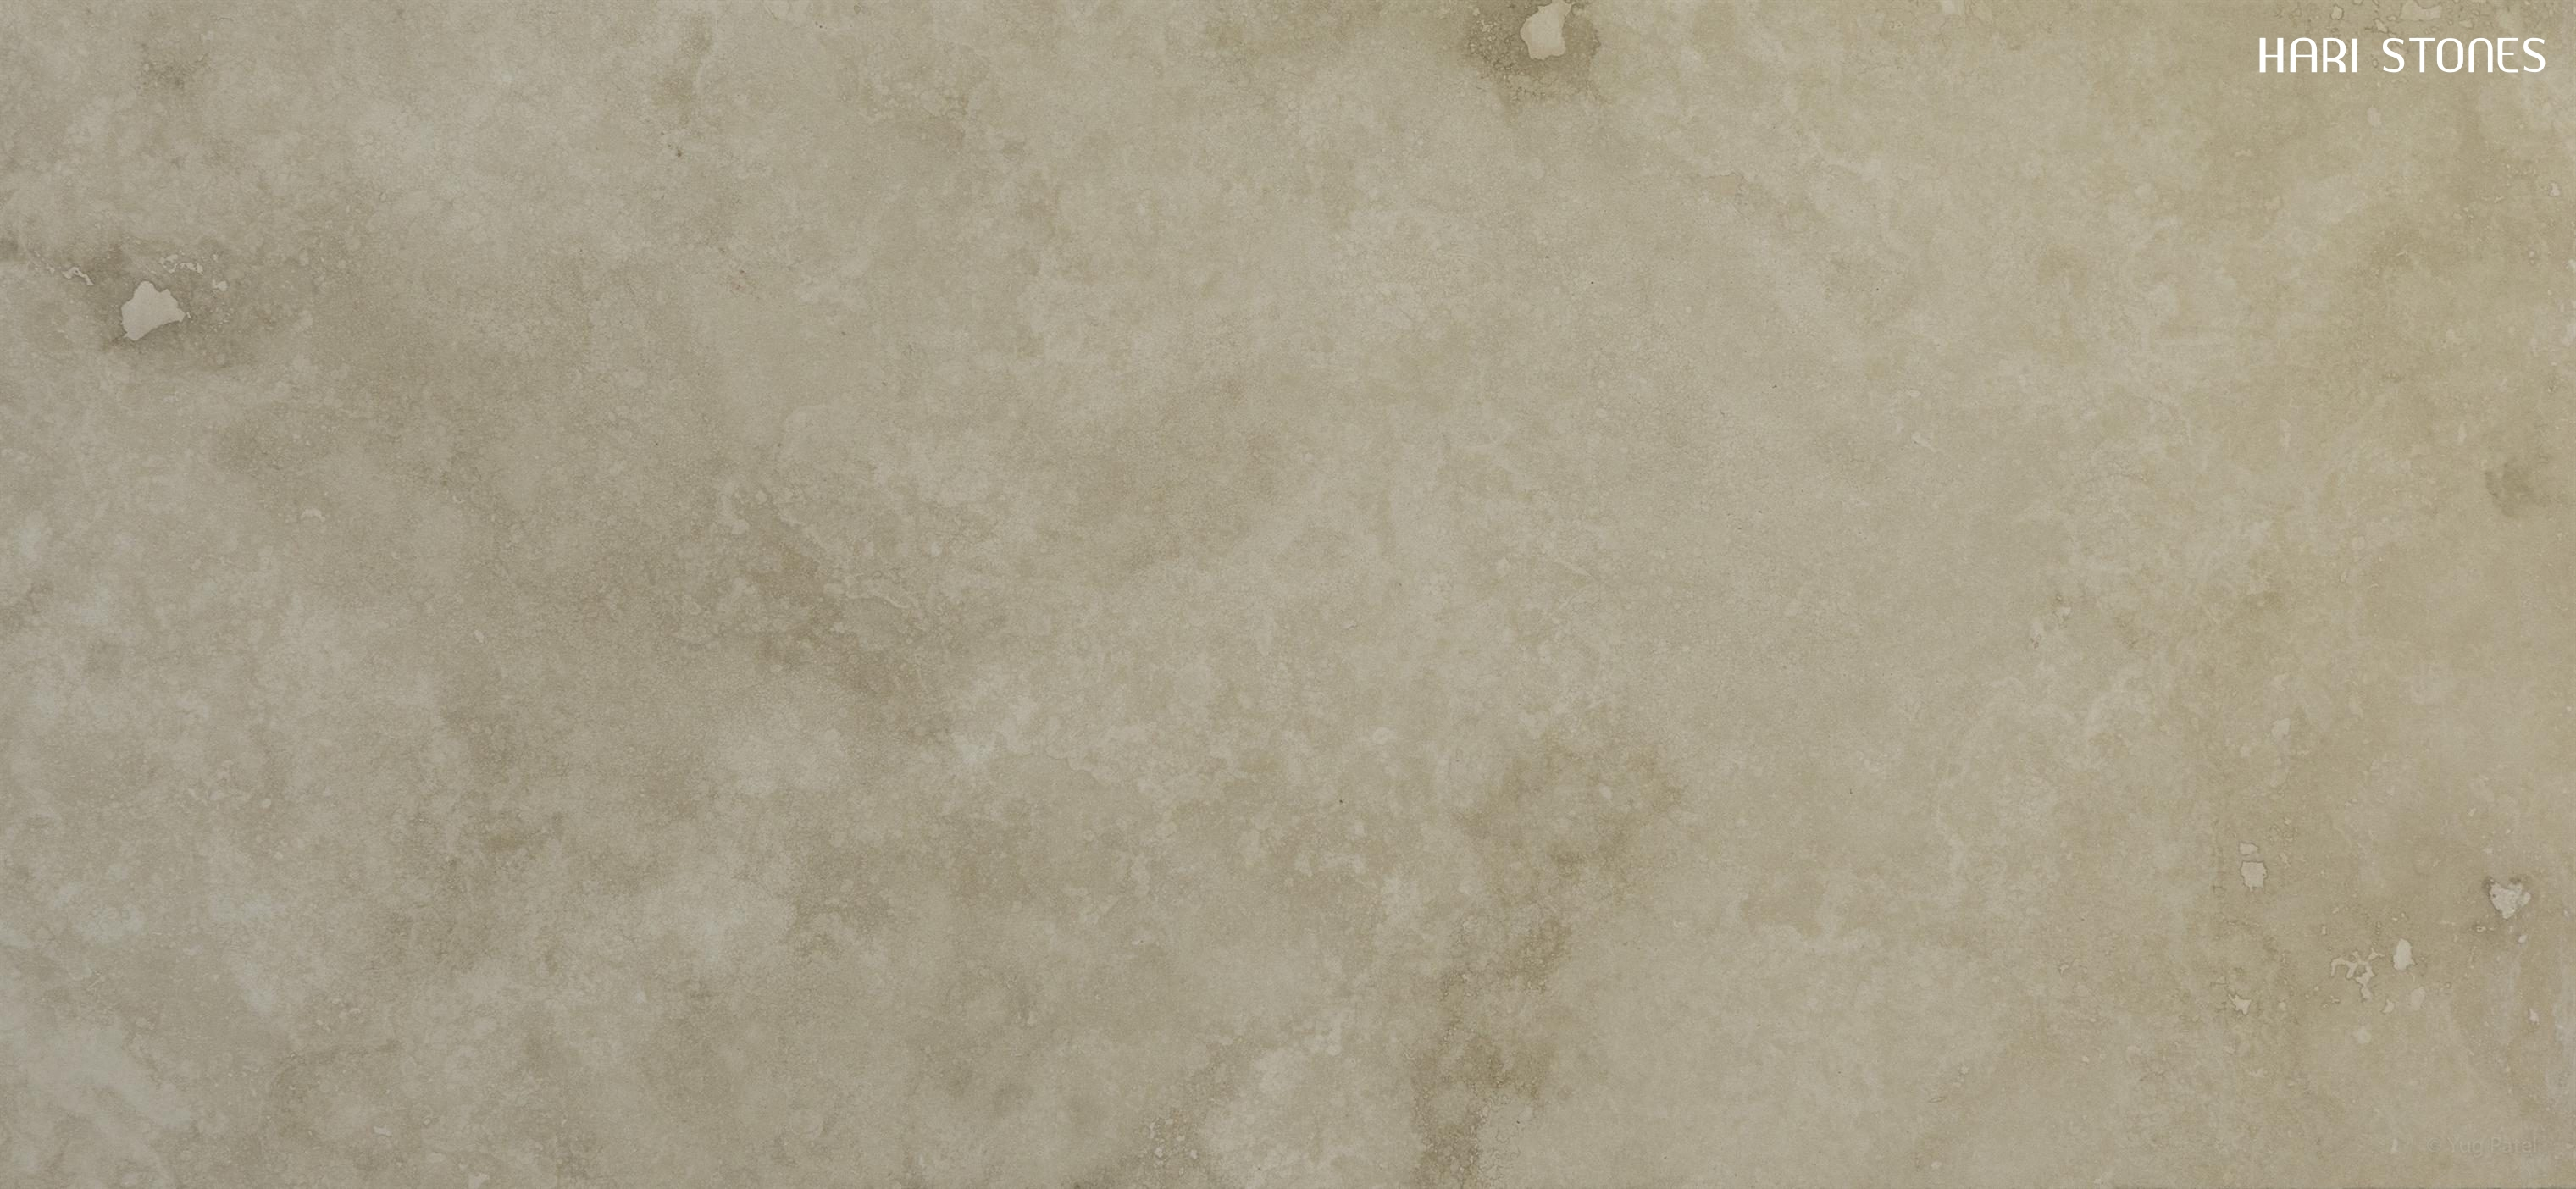 Ivory Honed Travertine Slab Suppliers